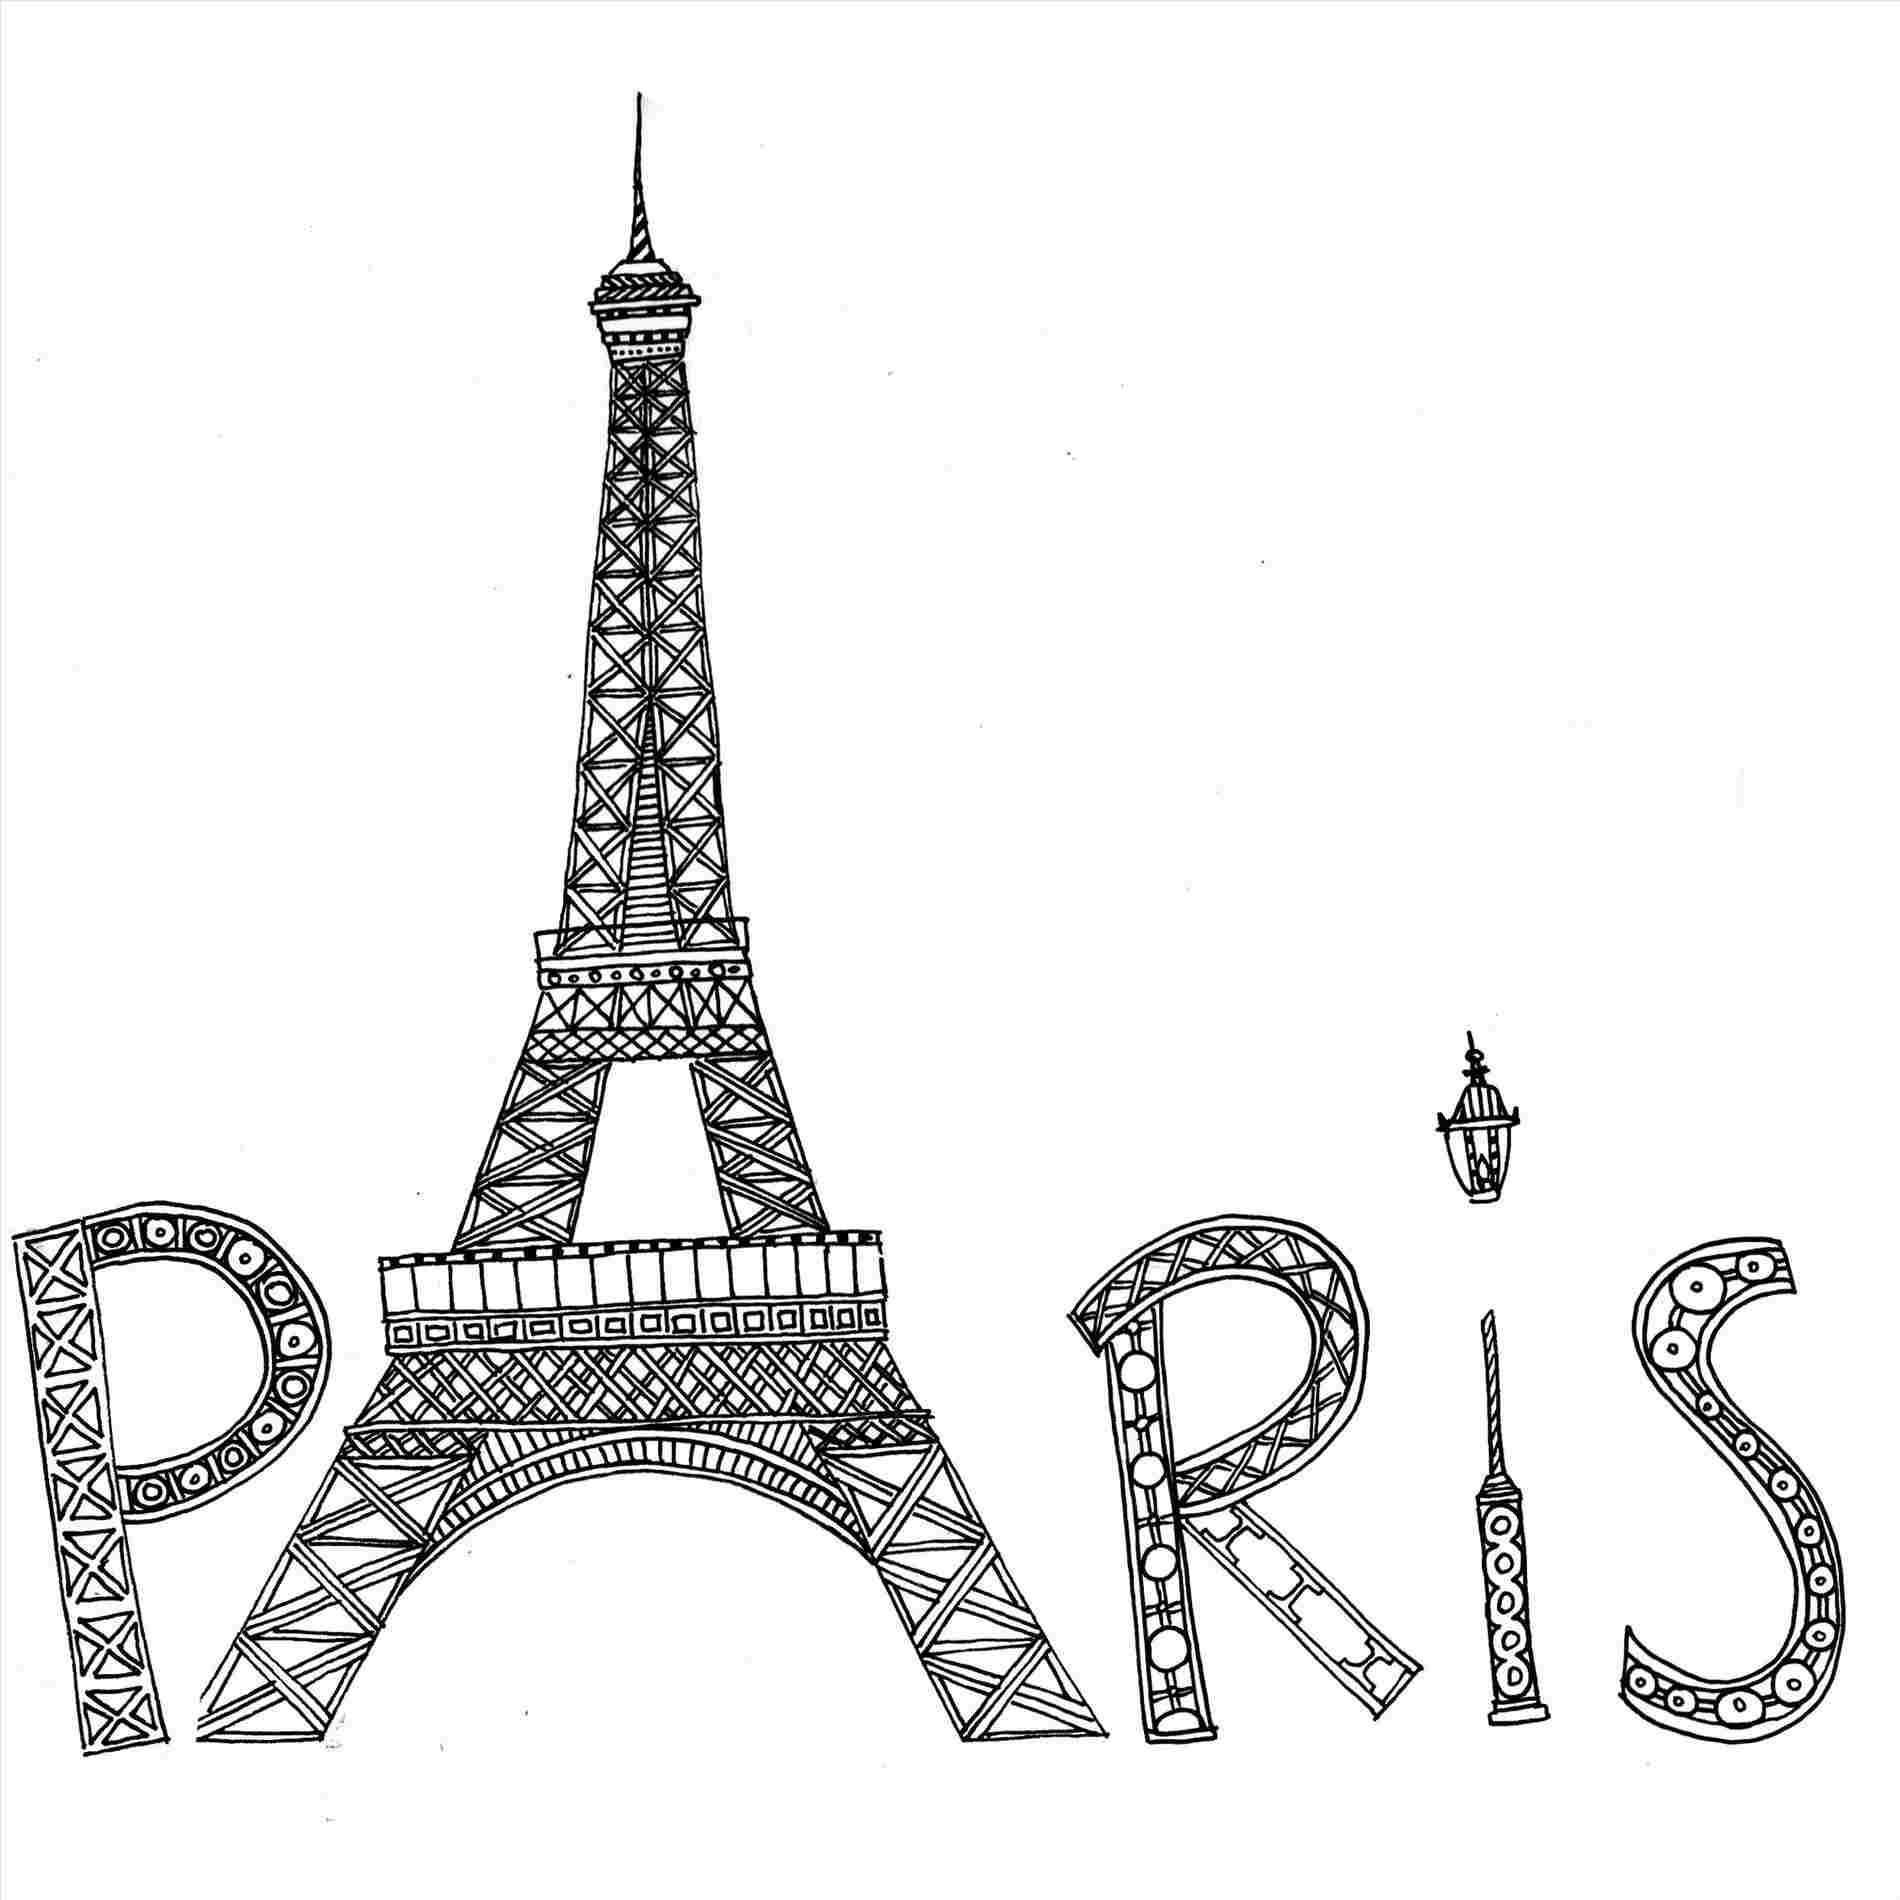 how to draw the eiffel tower easy step by step eiffel tower drawing steps at paintingvalleycom explore draw step step the by to eiffel easy tower how